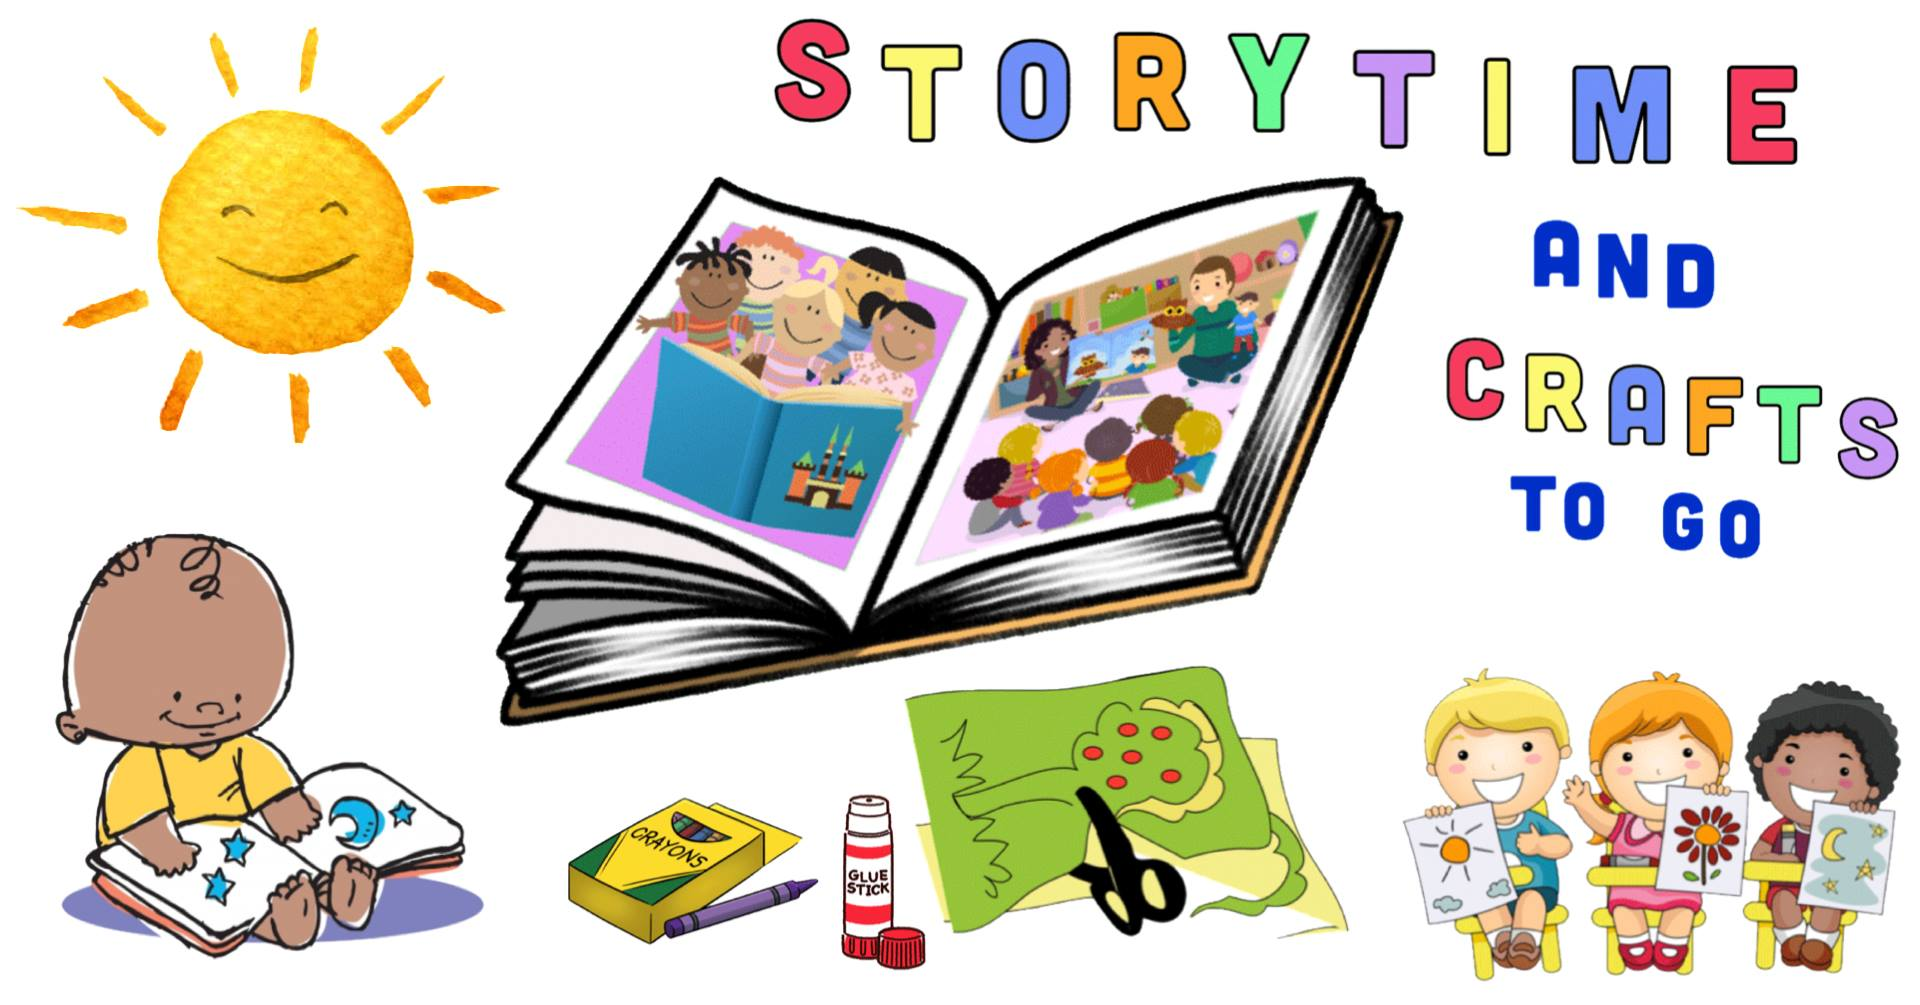 Storytime and Crafts to Go